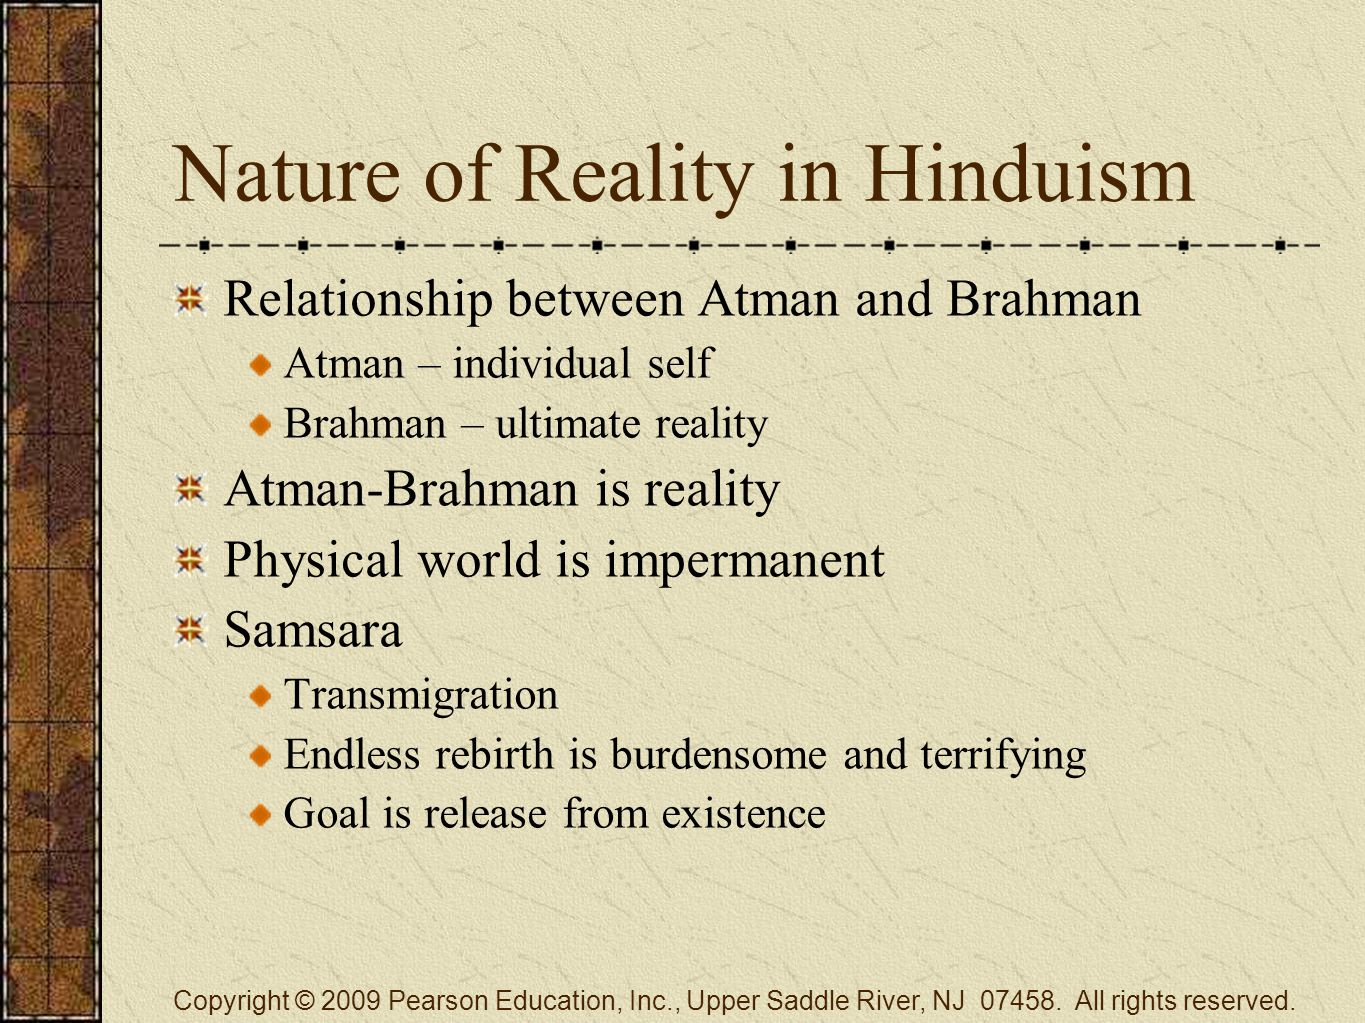 Nature of Reality in Hinduism Relationship between Atman and Brahman Atman – individual self Brahman – ultimate reality Atman-Brahman is reality Physical world is impermanent Samsara Transmigration Endless rebirth is burdensome and terrifying Goal is release from existence Copyright © 2009 Pearson Education, Inc., Upper Saddle River, NJ 07458.